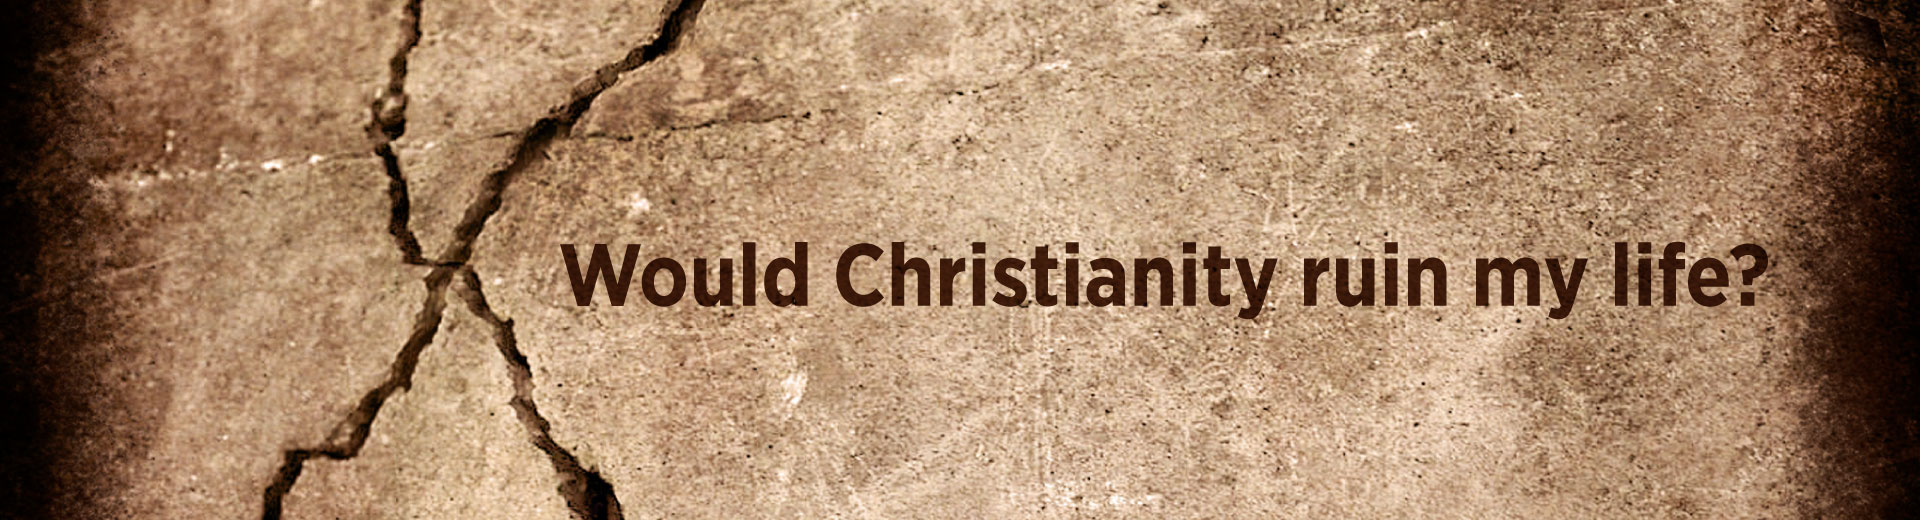 Would Christianity ruin my life?